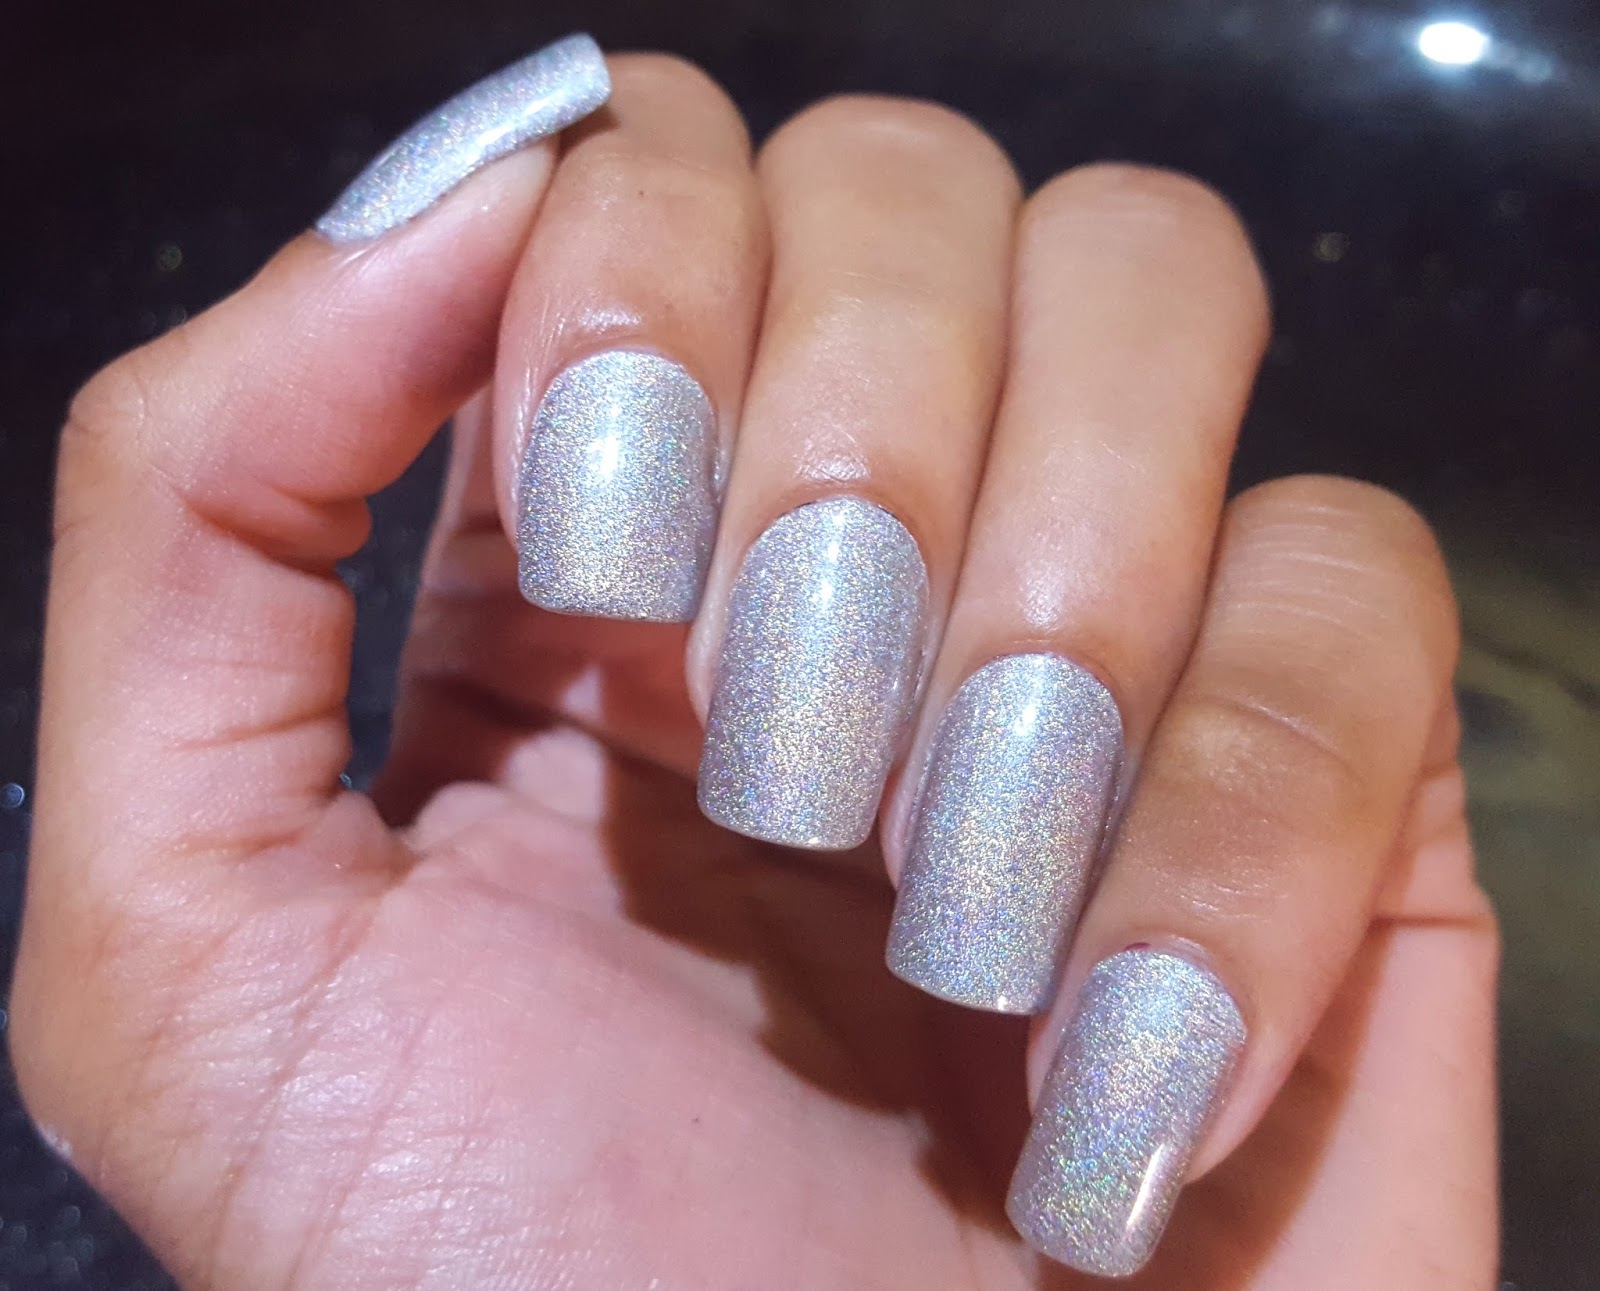 Ahoy! Nails!!: Kiko Holographic Nail Lacquer - 01 Silver Swatch & Review